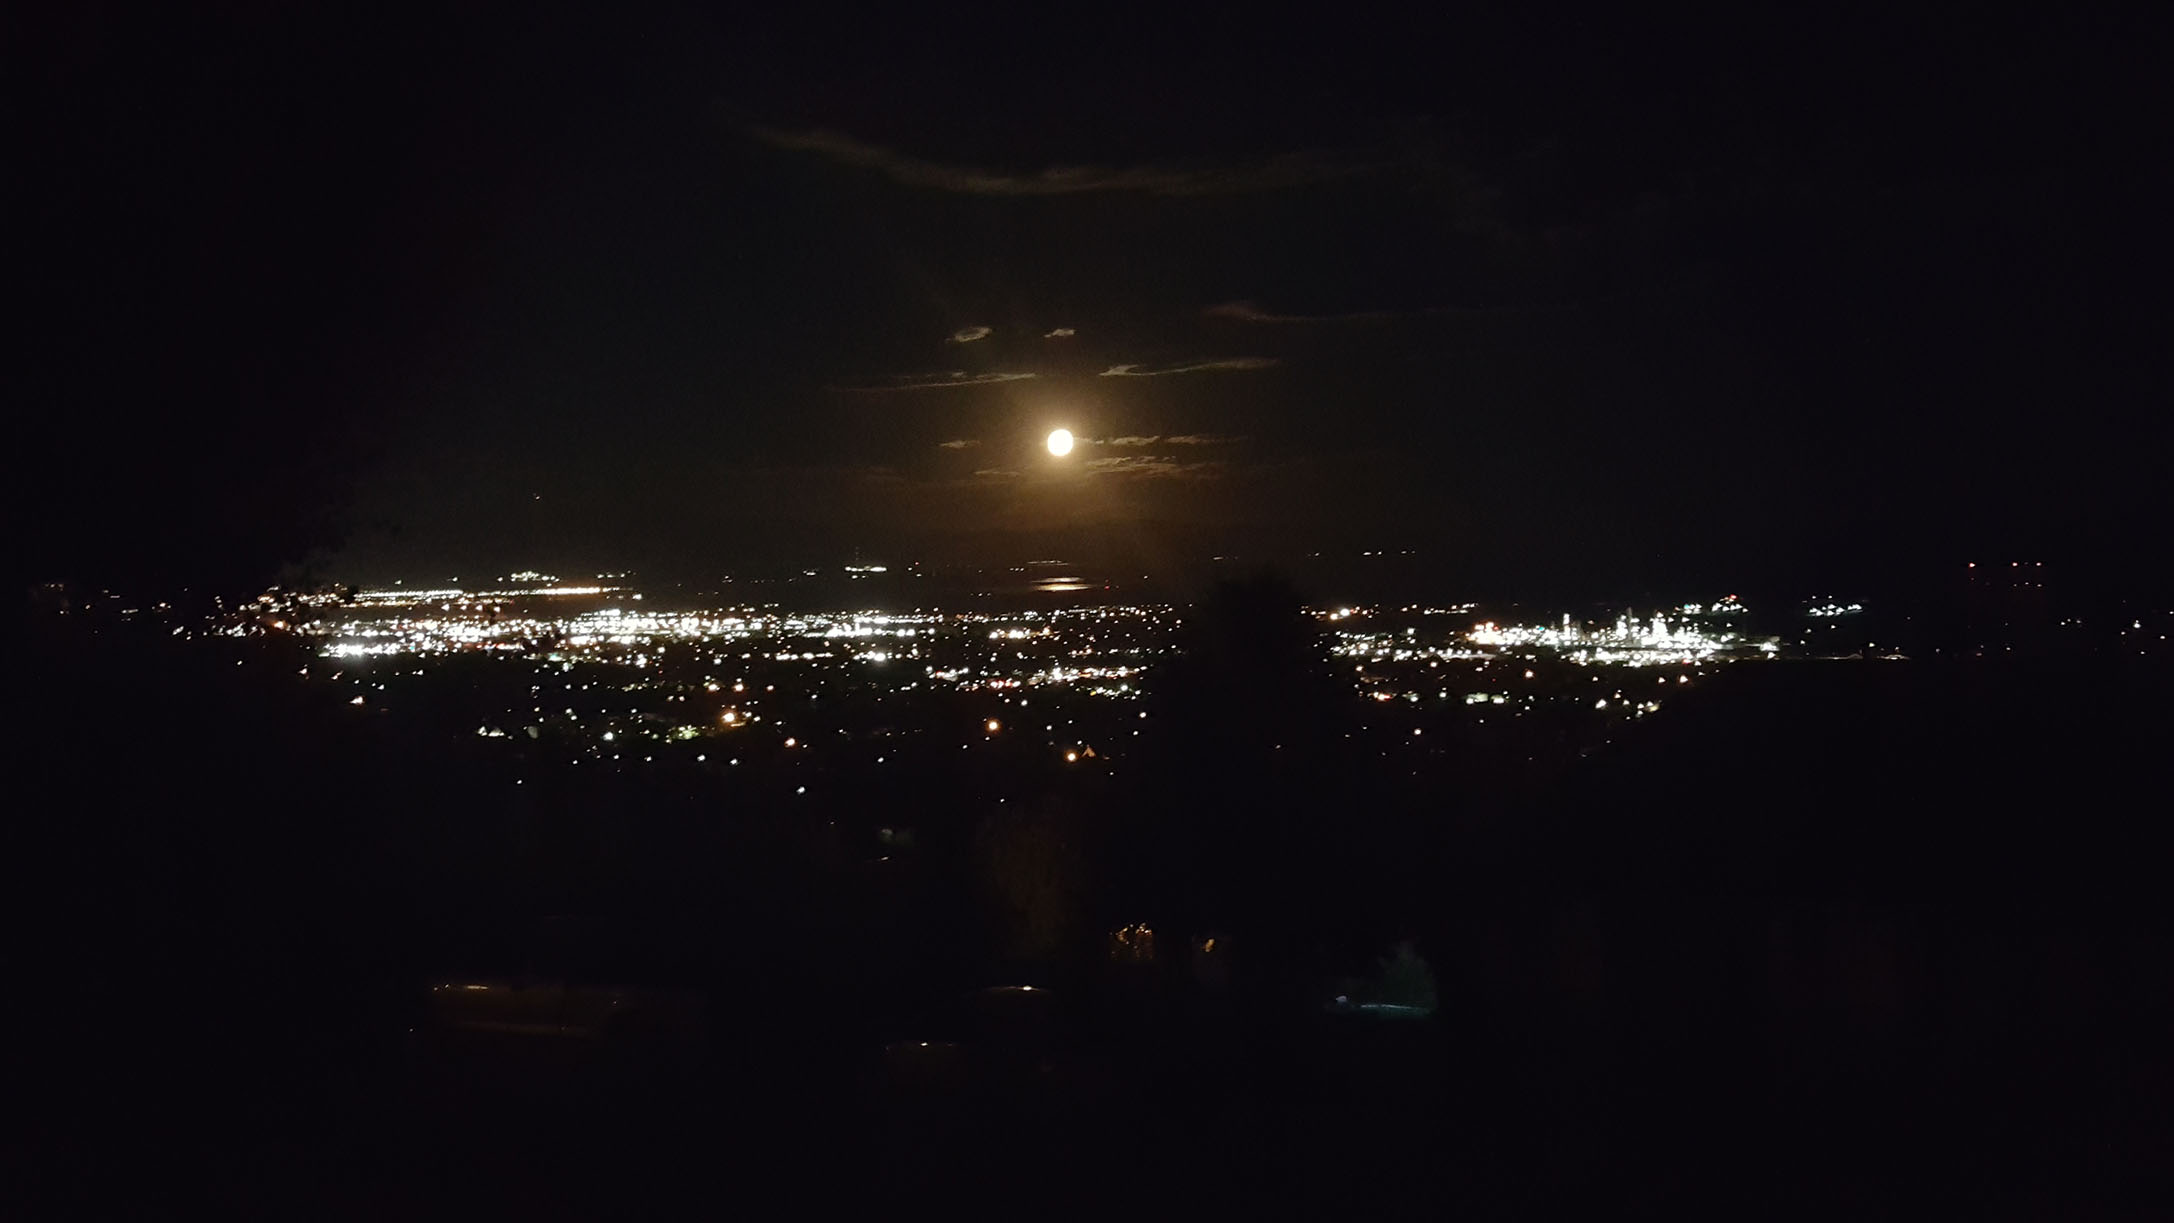 Moon from my view